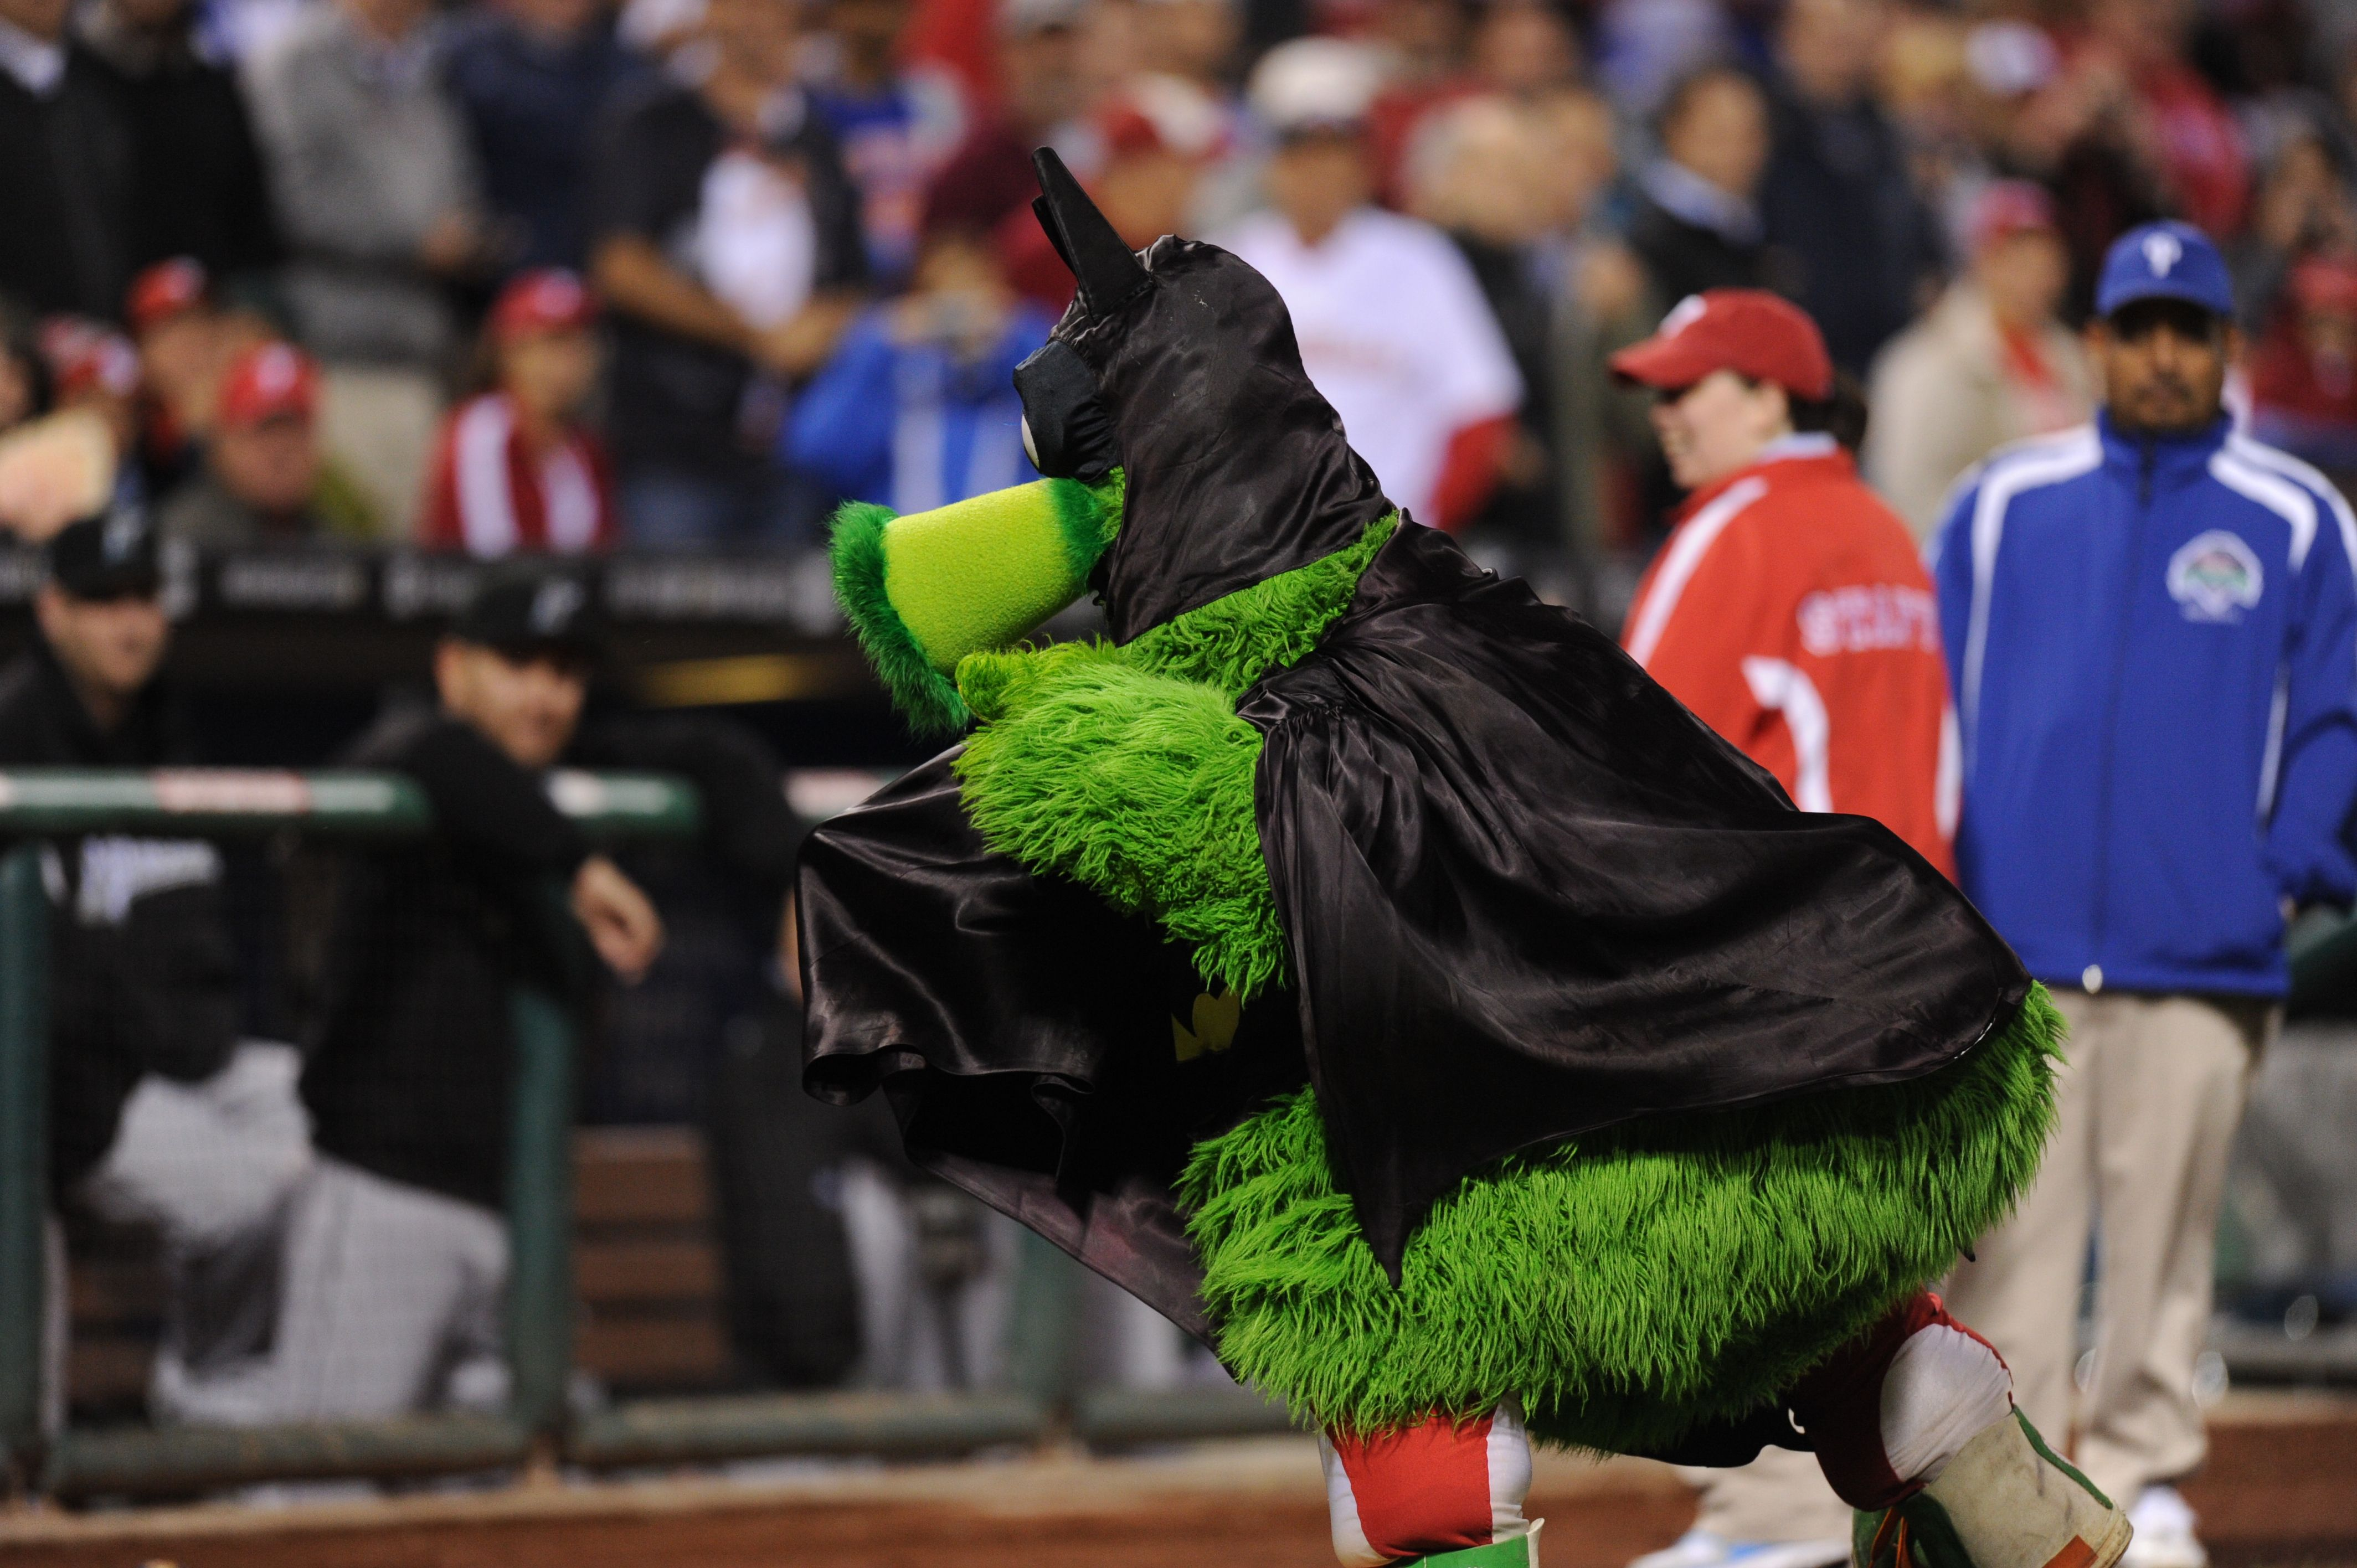 Happy Halloween! The Phanatic in just one of his many